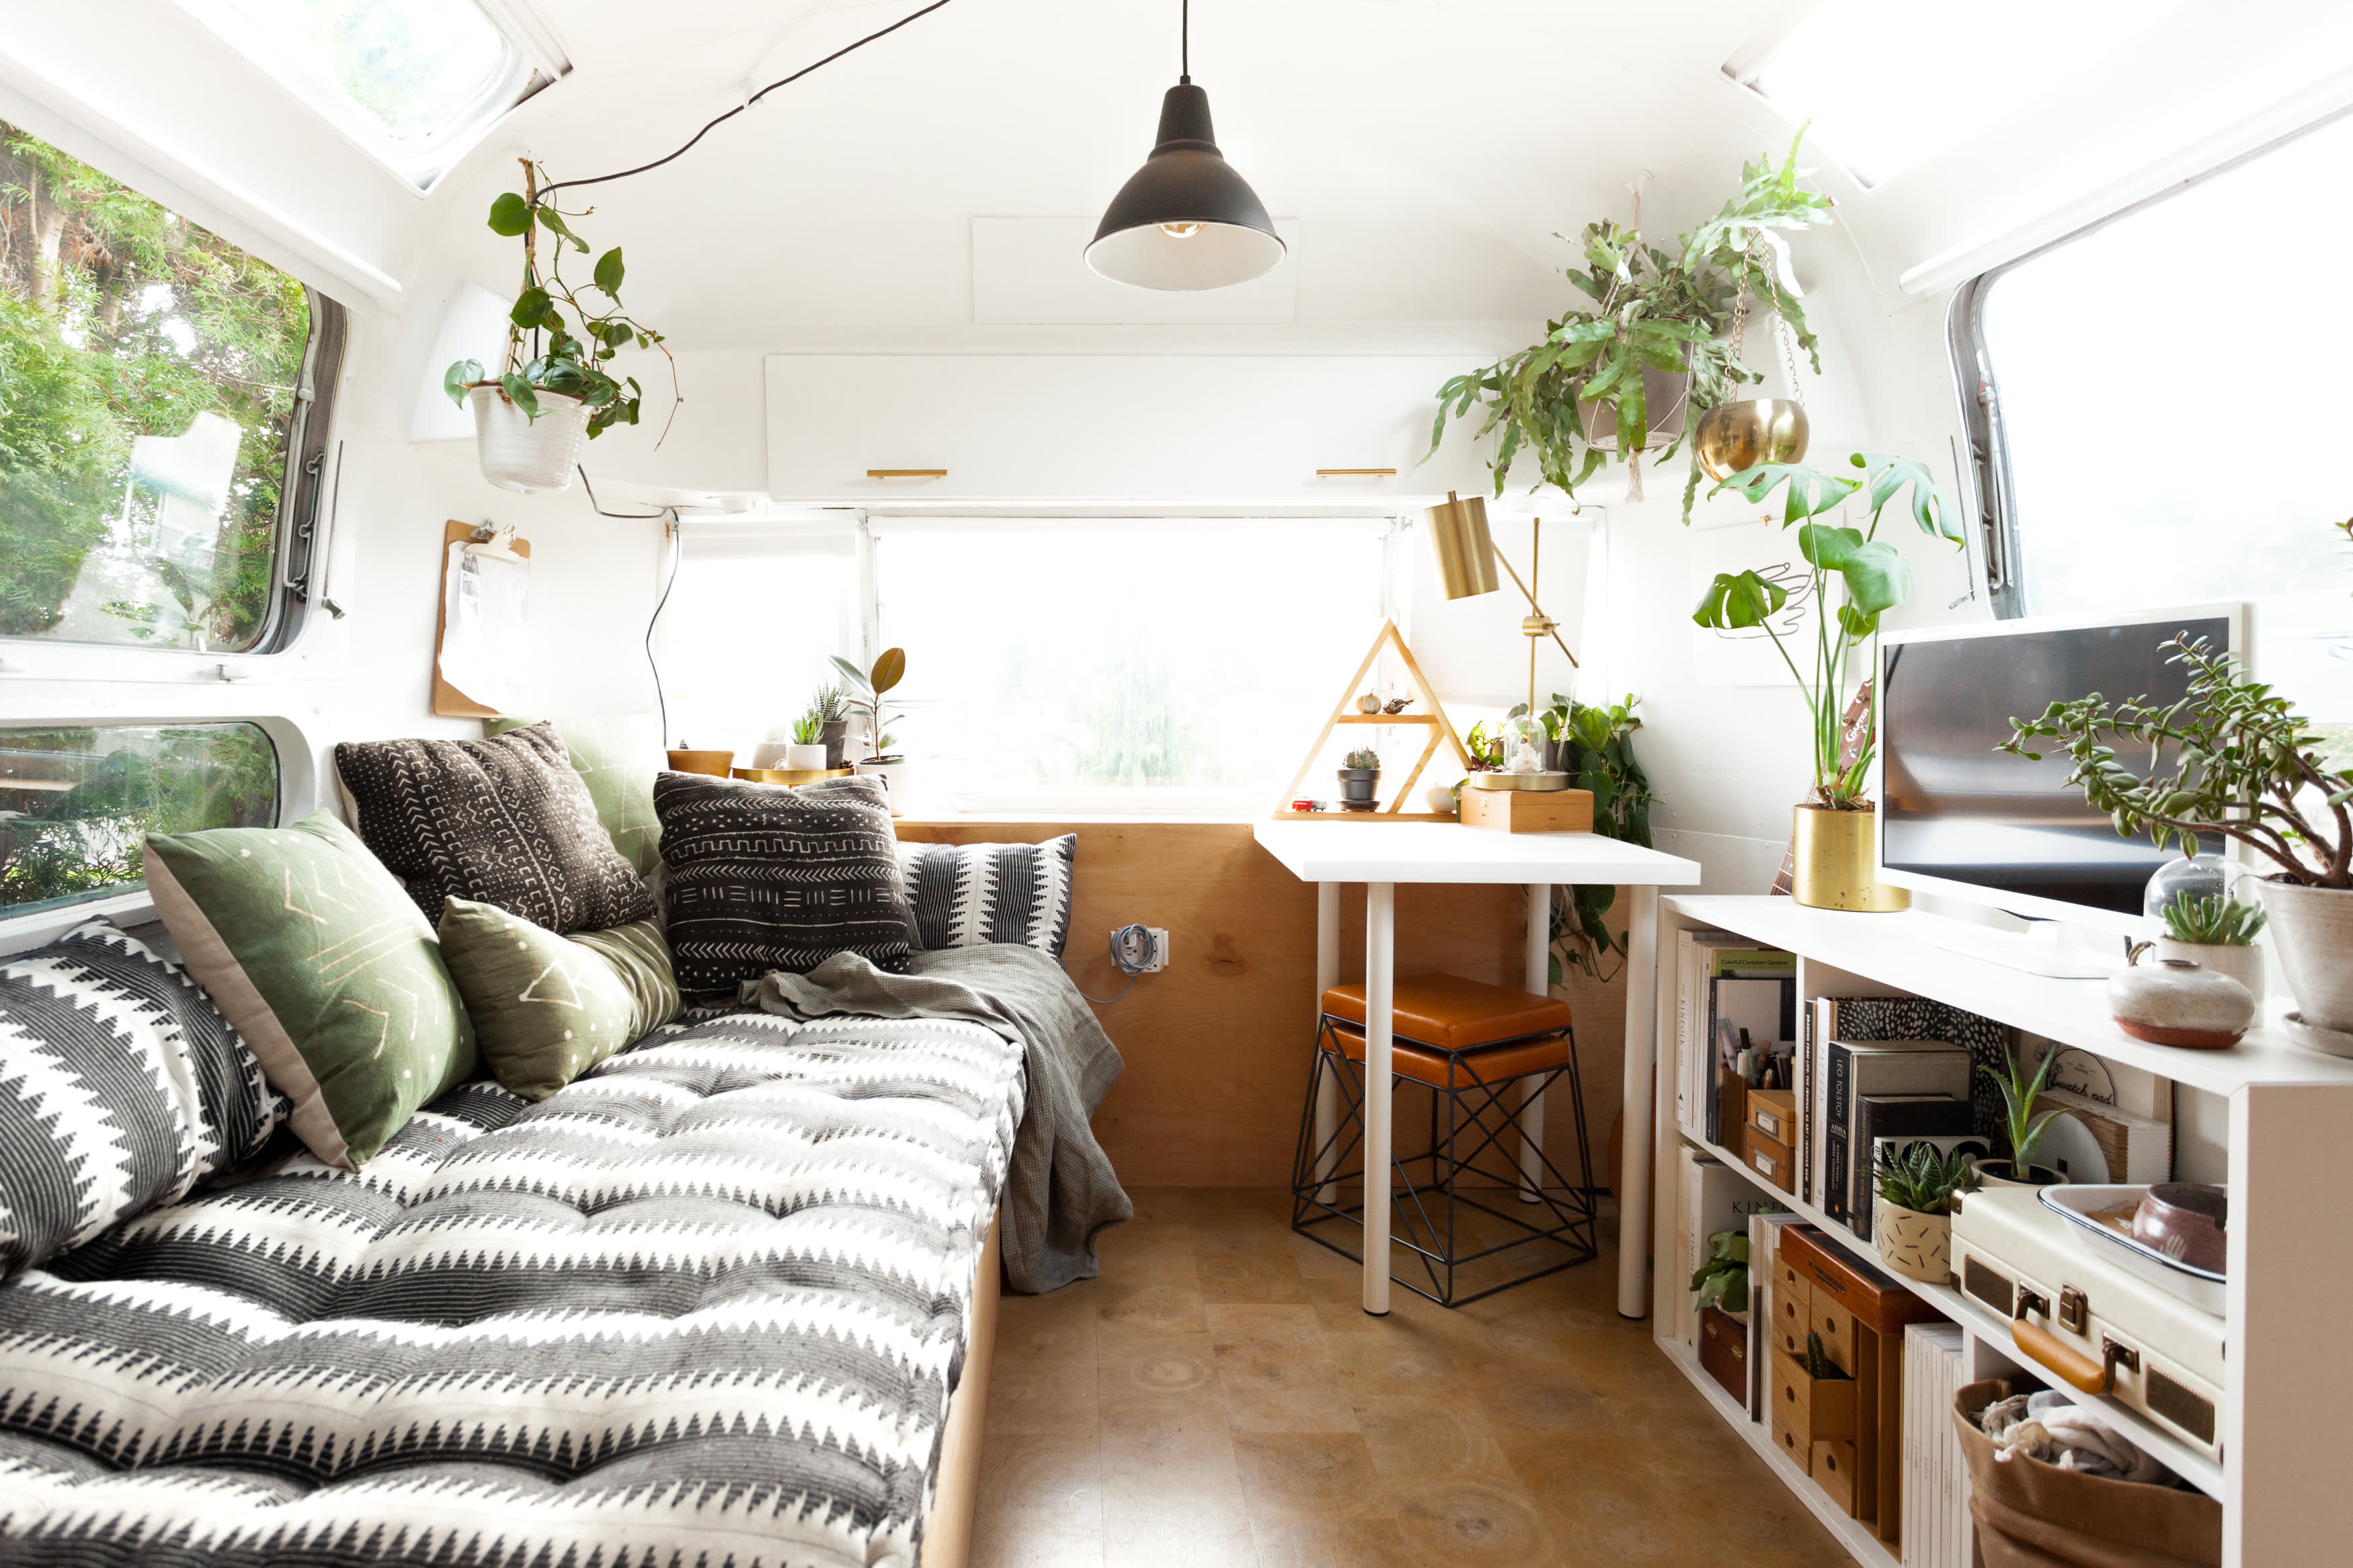 Tour: Vintage Airstream Gets a Scandinavian Style Remodel